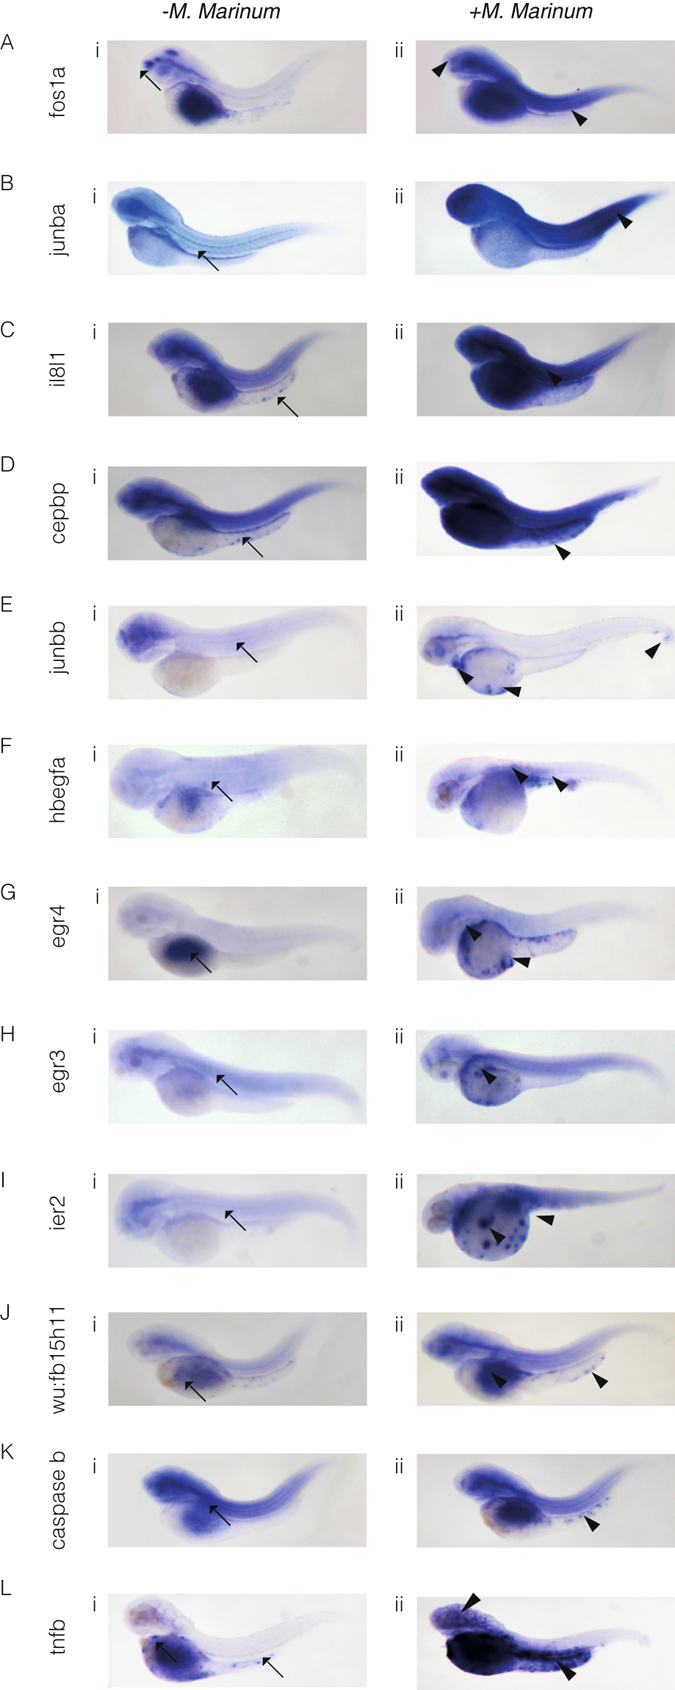 In situ hybridisation reveals spatial analysis of M . marinum -induced upregulated genes. Embryos were injected at the 32-512-cell stage with M . marinum . Expression patterns and gene transcript levels were analysed by in situ hybridisation using digoxigenin-labelled RNA probes, in uninjected controls ( A – Li ) and M . marinum -injected embryos ( A – Lii ). Control expression patterns are indicated by the black arrows with black arrowheads used to indicate altered expression patterns for fos1a ( A ), junba ( B ), il81a ( C ), cepbp ( D ), junbb ( E ), hbegfa ( F ), egr4 ( G ), egr3 ( H ), ier2 ( I ), wu:fb15h11 ( J ), caspase b ( K ) and tnfb ( L ).